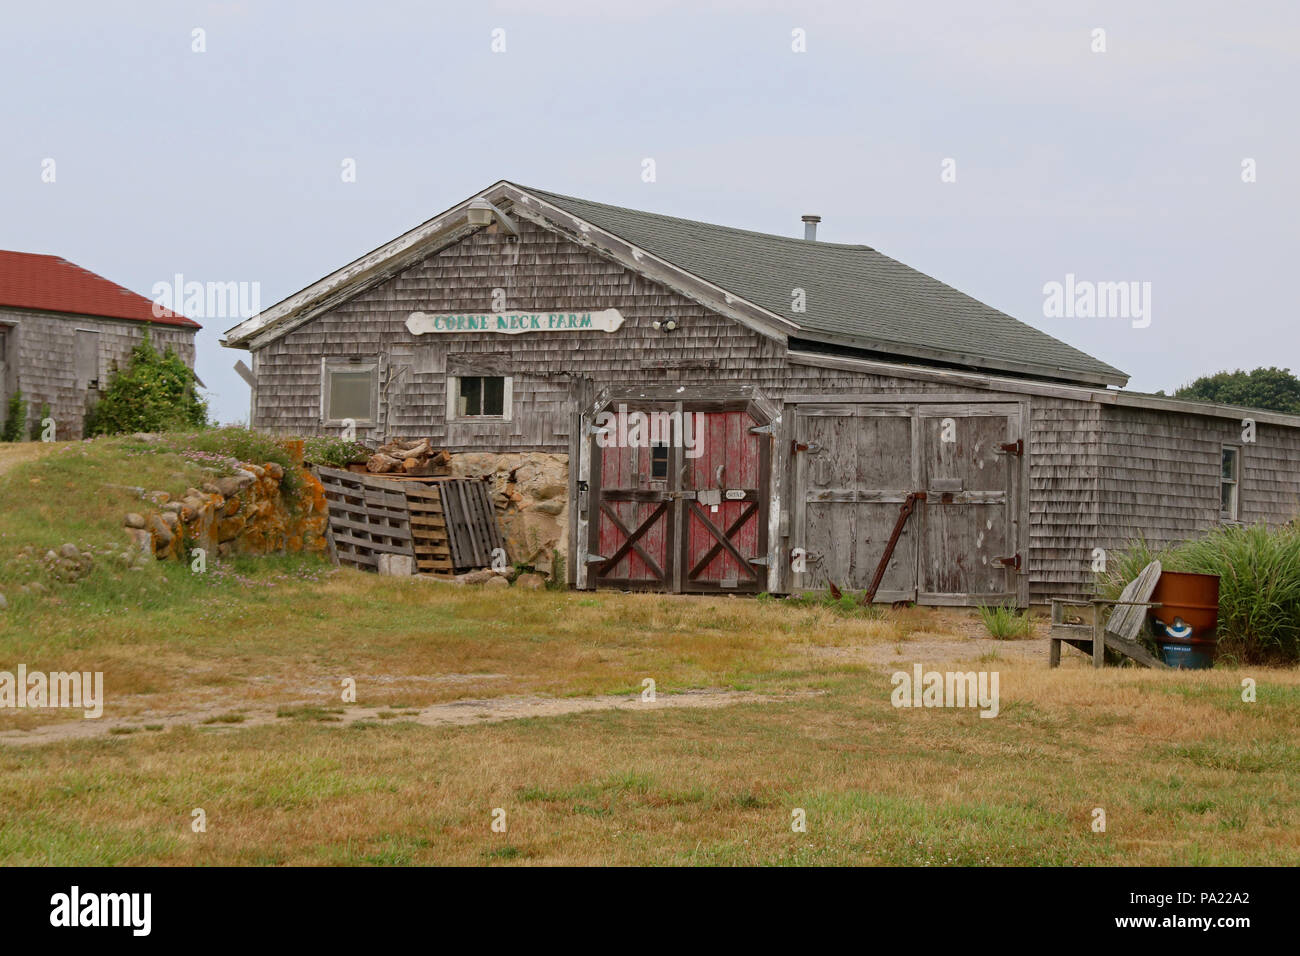 The barn at Corne Neck Farm in Block Island, Rhode Island. - Stock Image